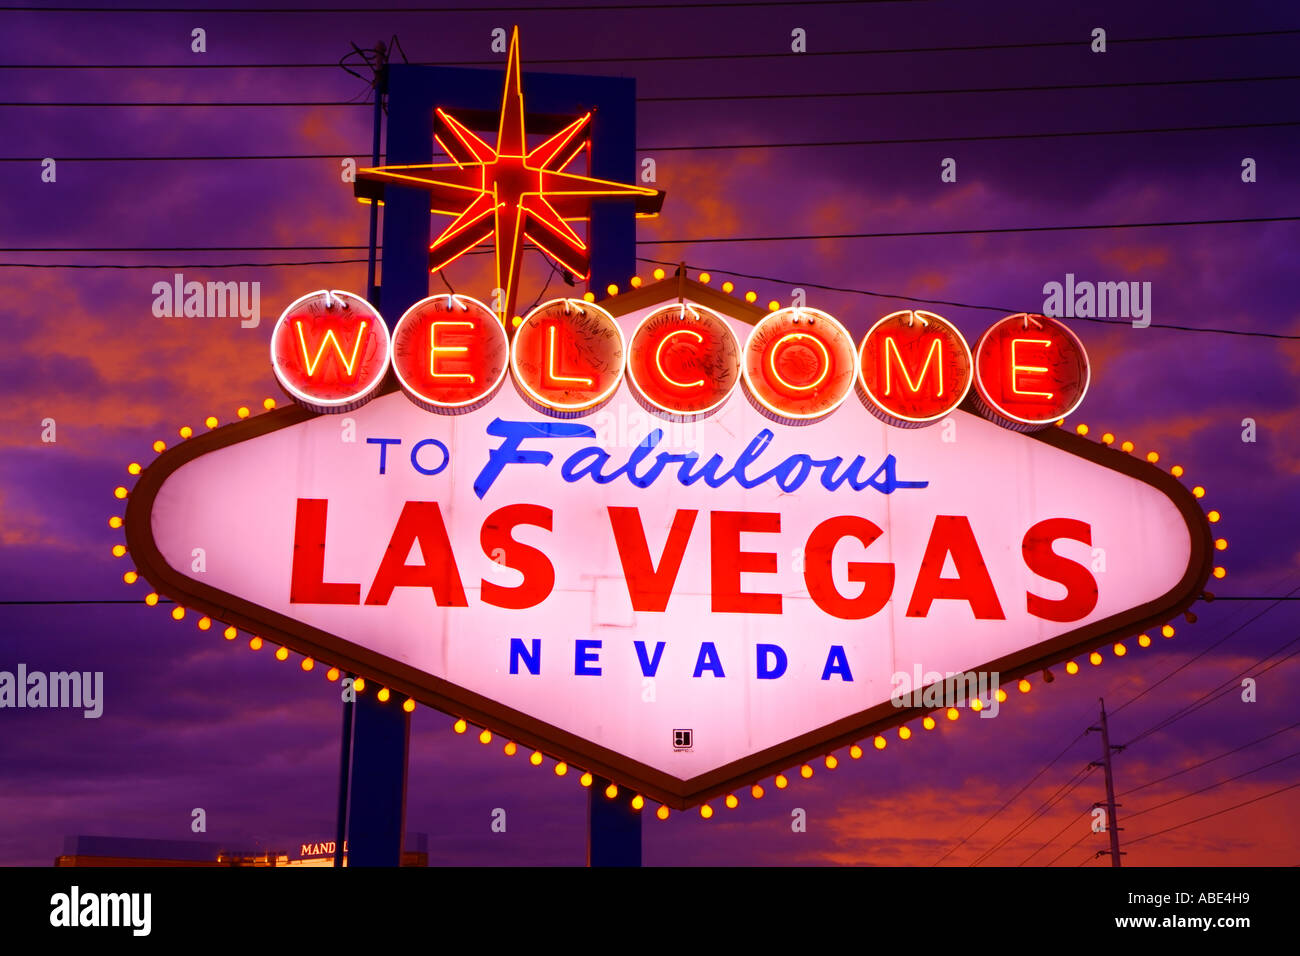 Stock footage welcome to fabulous las vegas sign with flashing lights - The Welcome To Las Vegas Sign At Night Las Vegas Nevada Stock Image